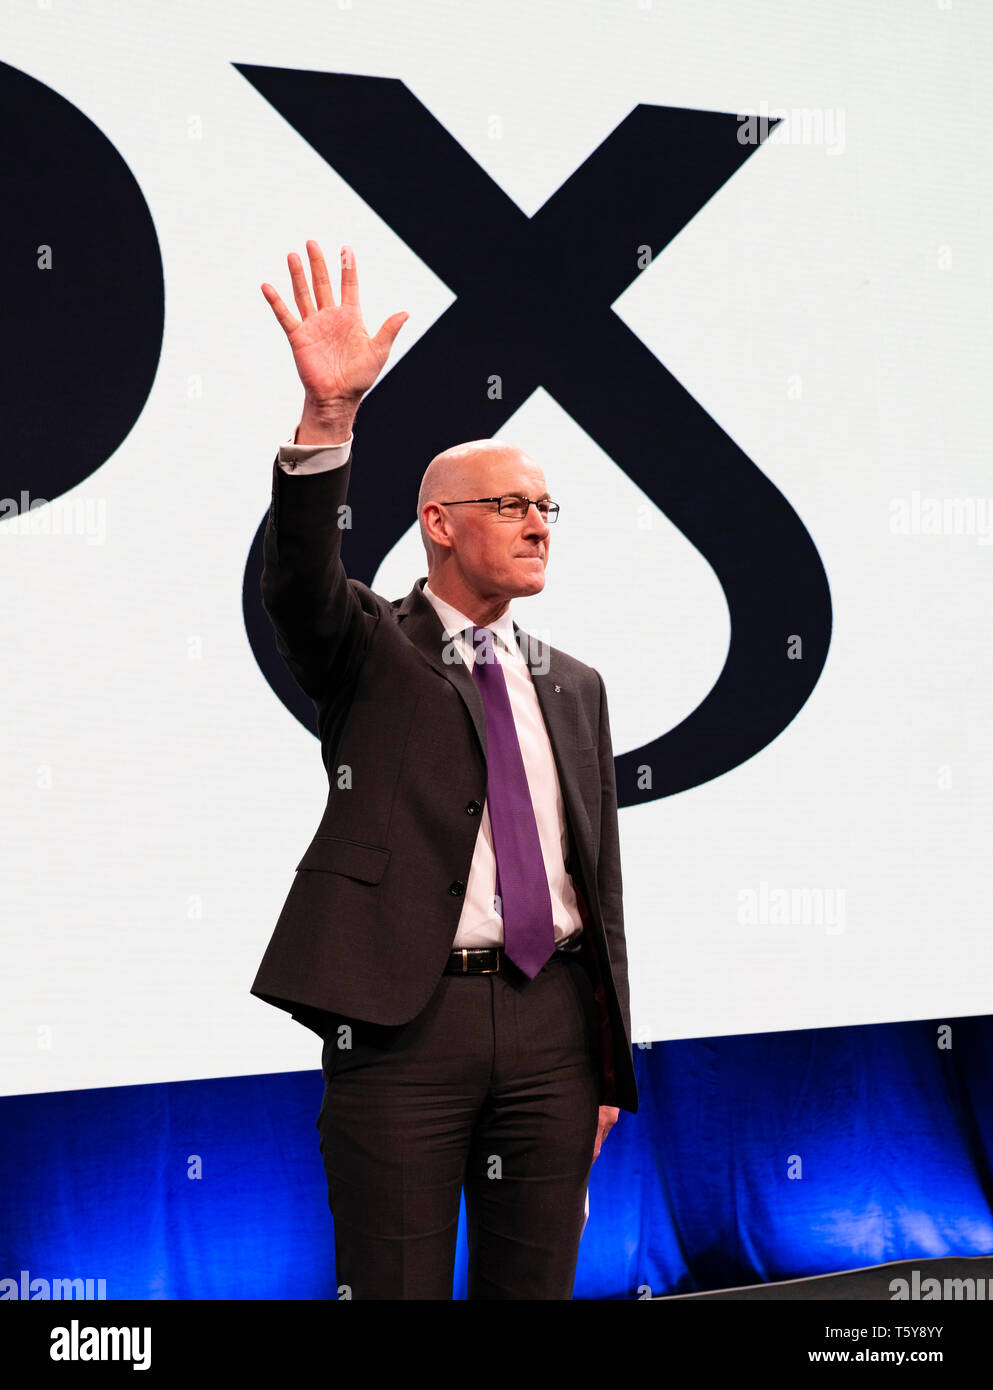 Edinburgh, Scotland, UK. 27 April, 2019. SNP ( Scottish National Party) Spring Conference takes place at the EICC ( Edinburgh International Conference Centre) in Edinburgh. Pictured; Deputy First Minister John Swinney acknowledges delegates' applause at end of his speech  to the conference Credit: Iain Masterton/Alamy Live News - Stock Image